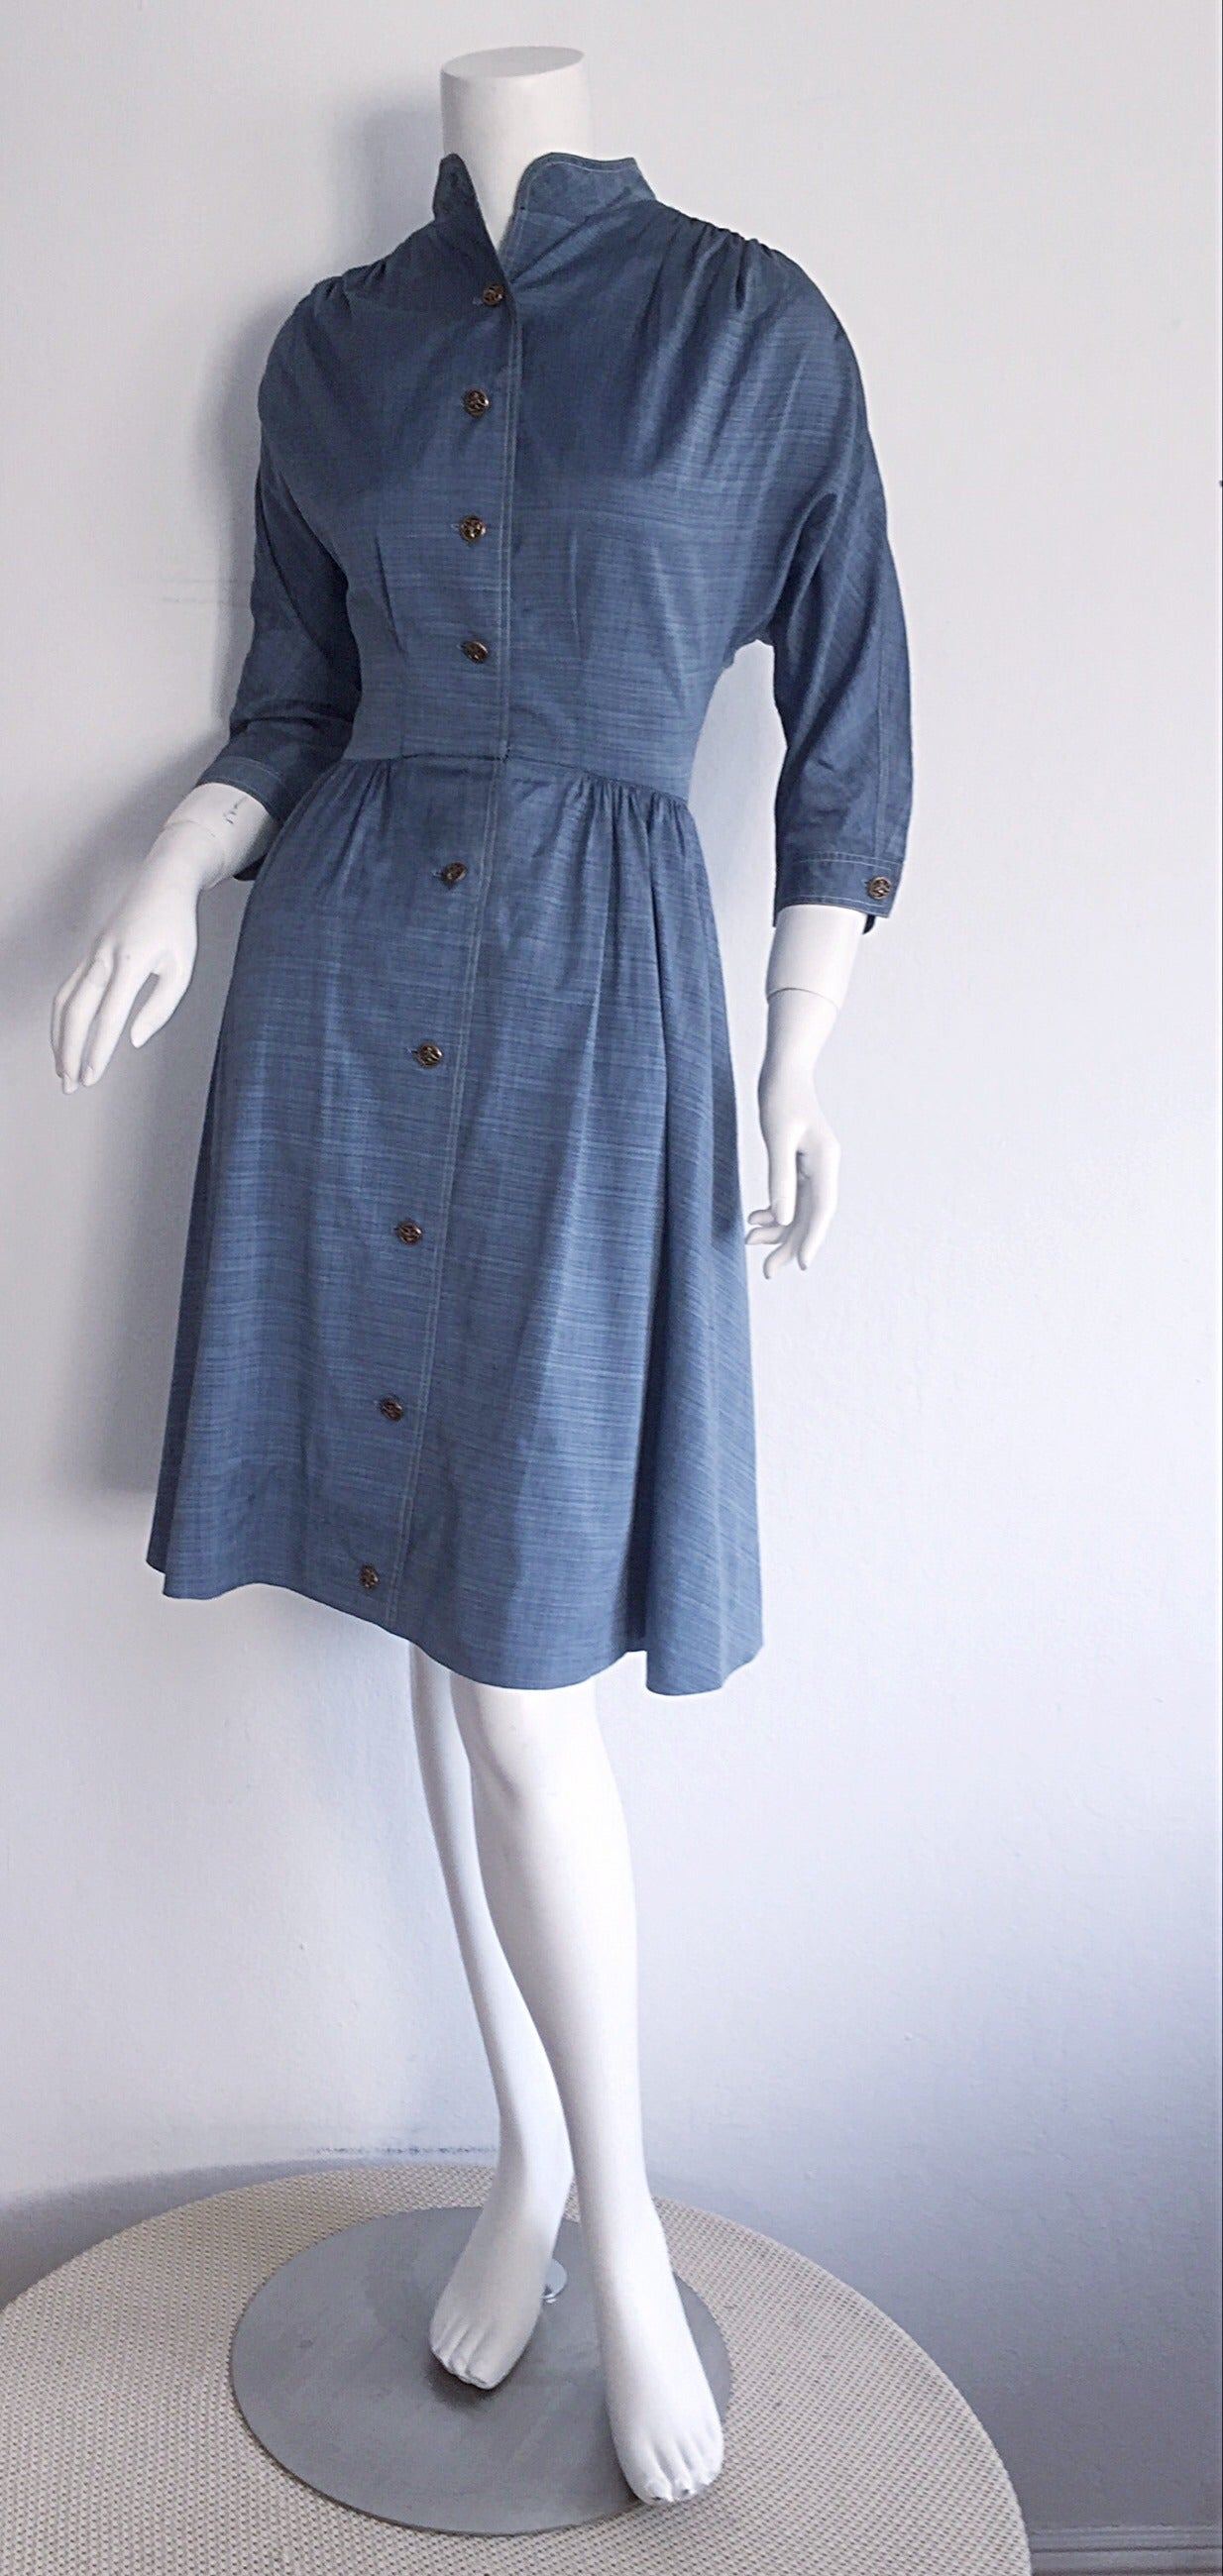 1940s Vintage B. Altman & Co. Denim Chambray Dress w/ Horse Buttons 2